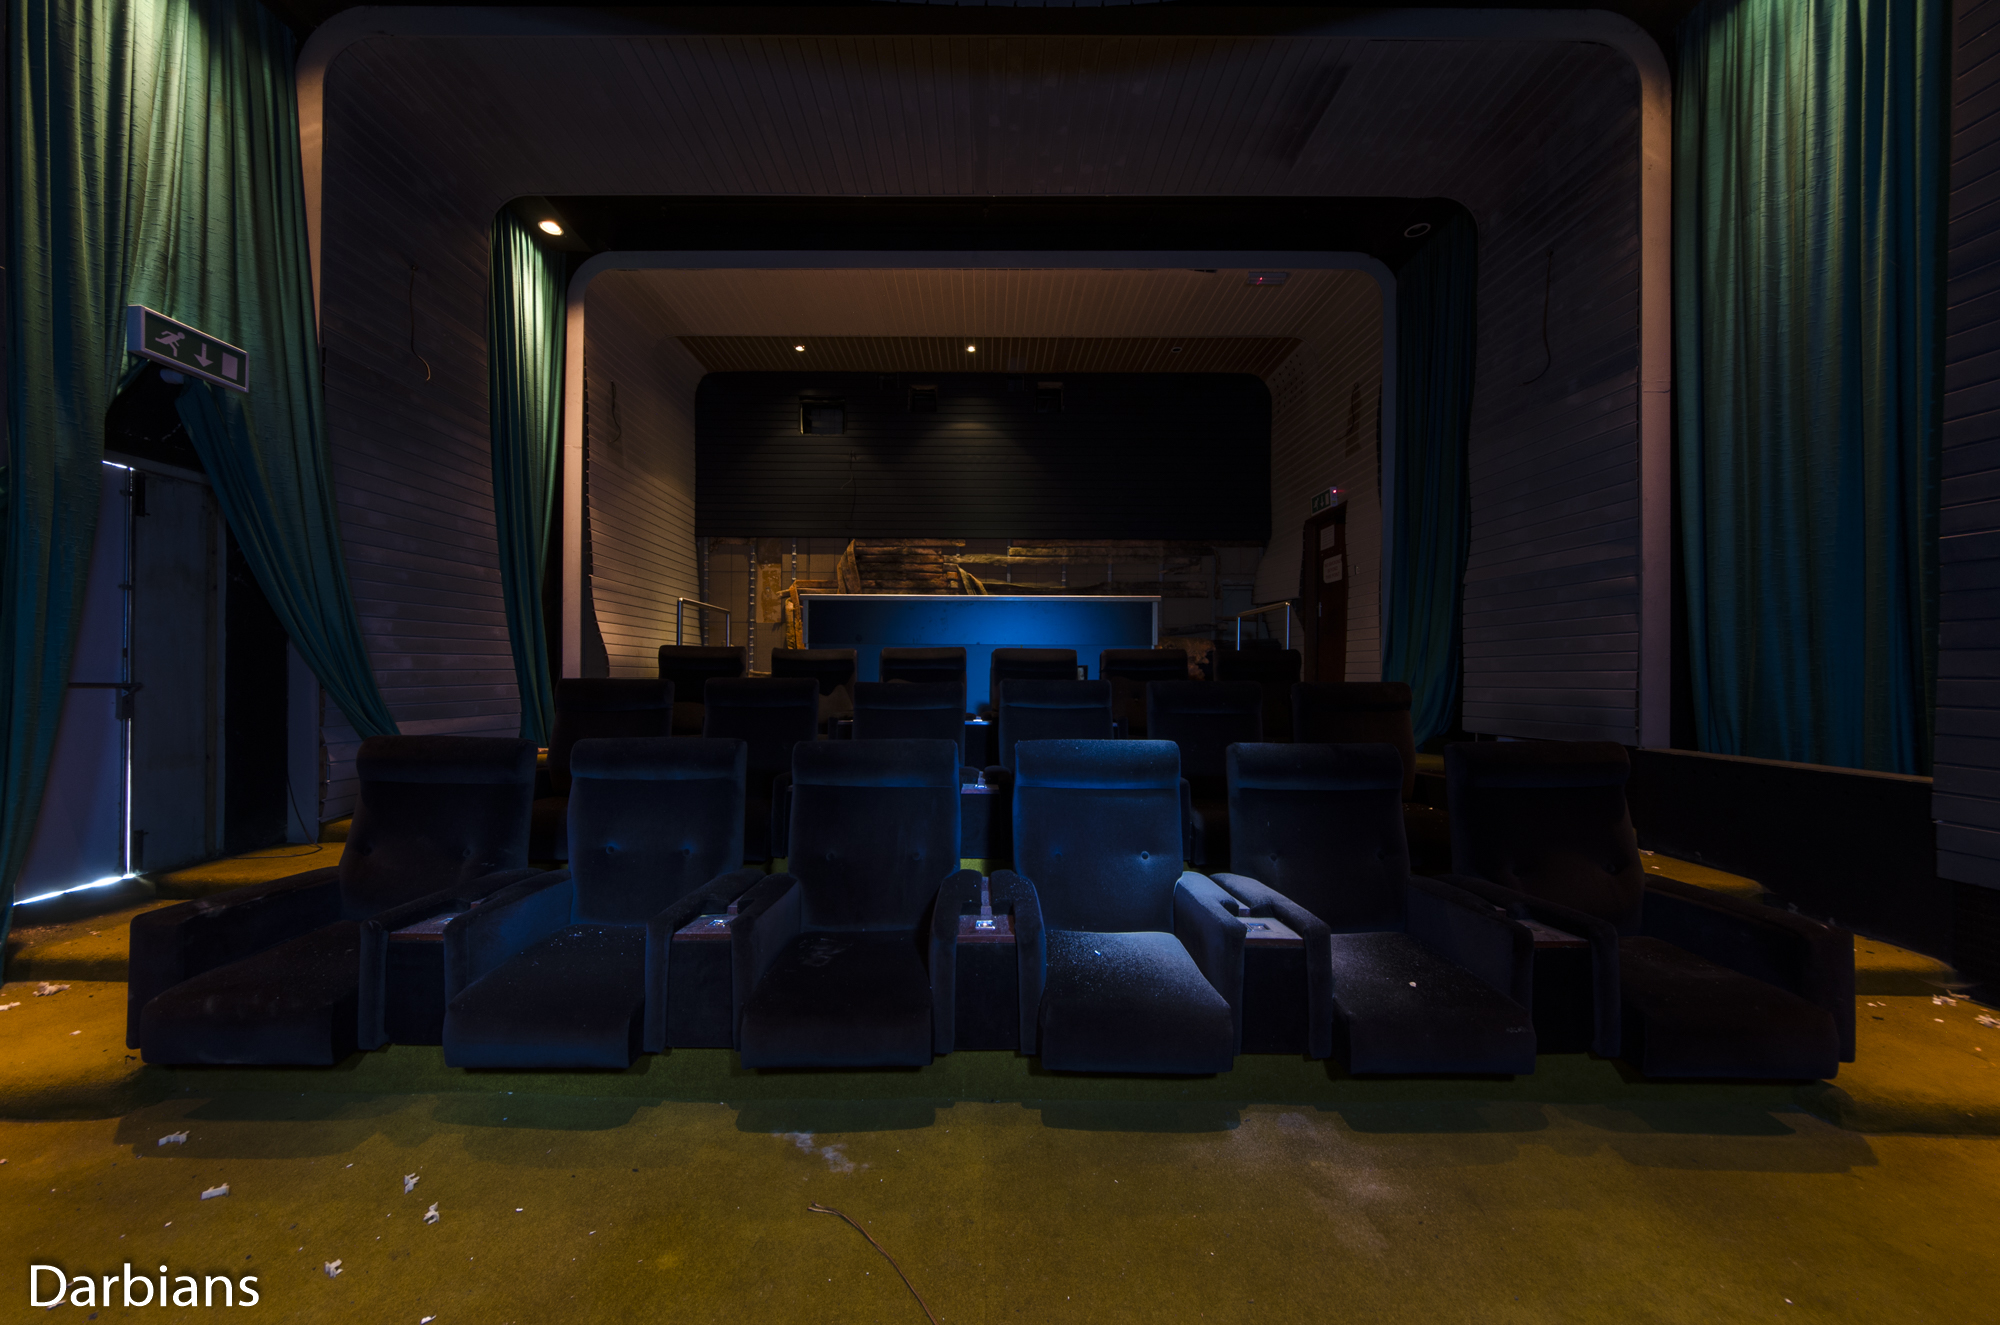 Deluxe London: The dolby digital theatre. There were ashtrays between the seats.